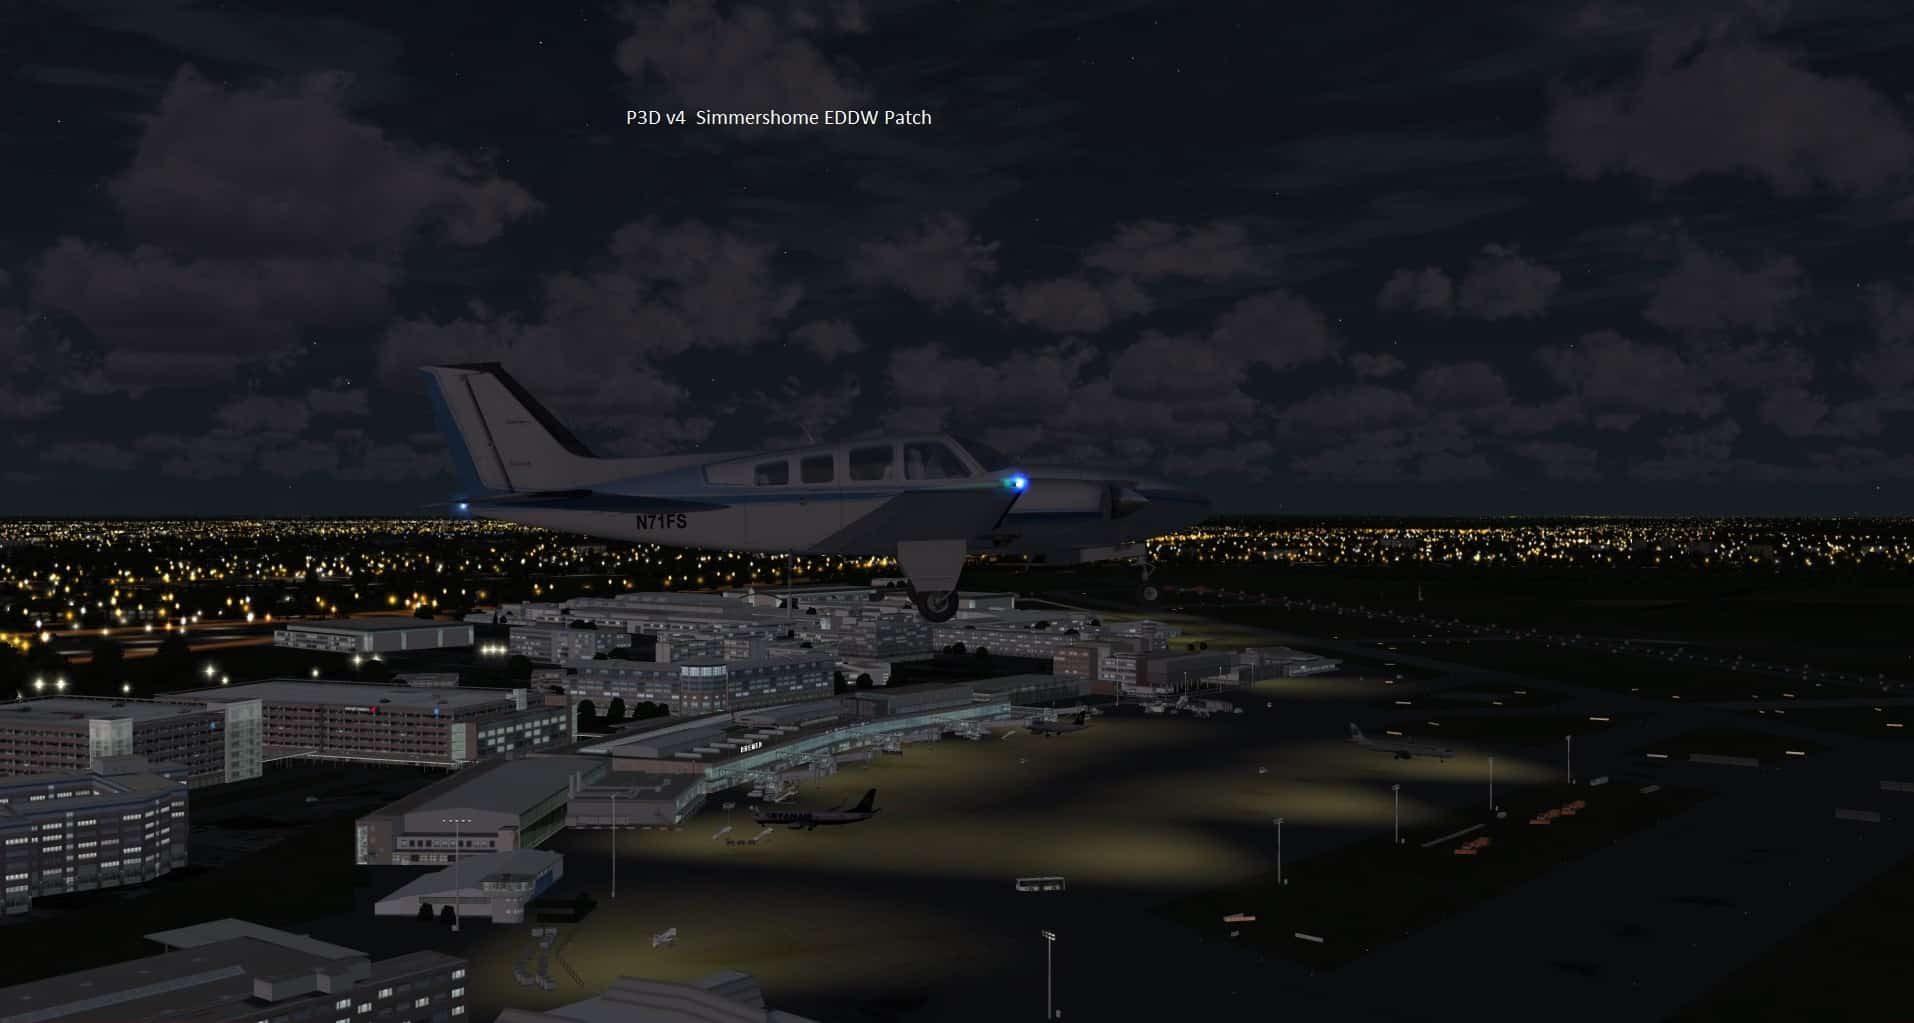 P3D v4 Interimpatches | SIMMERSHOME